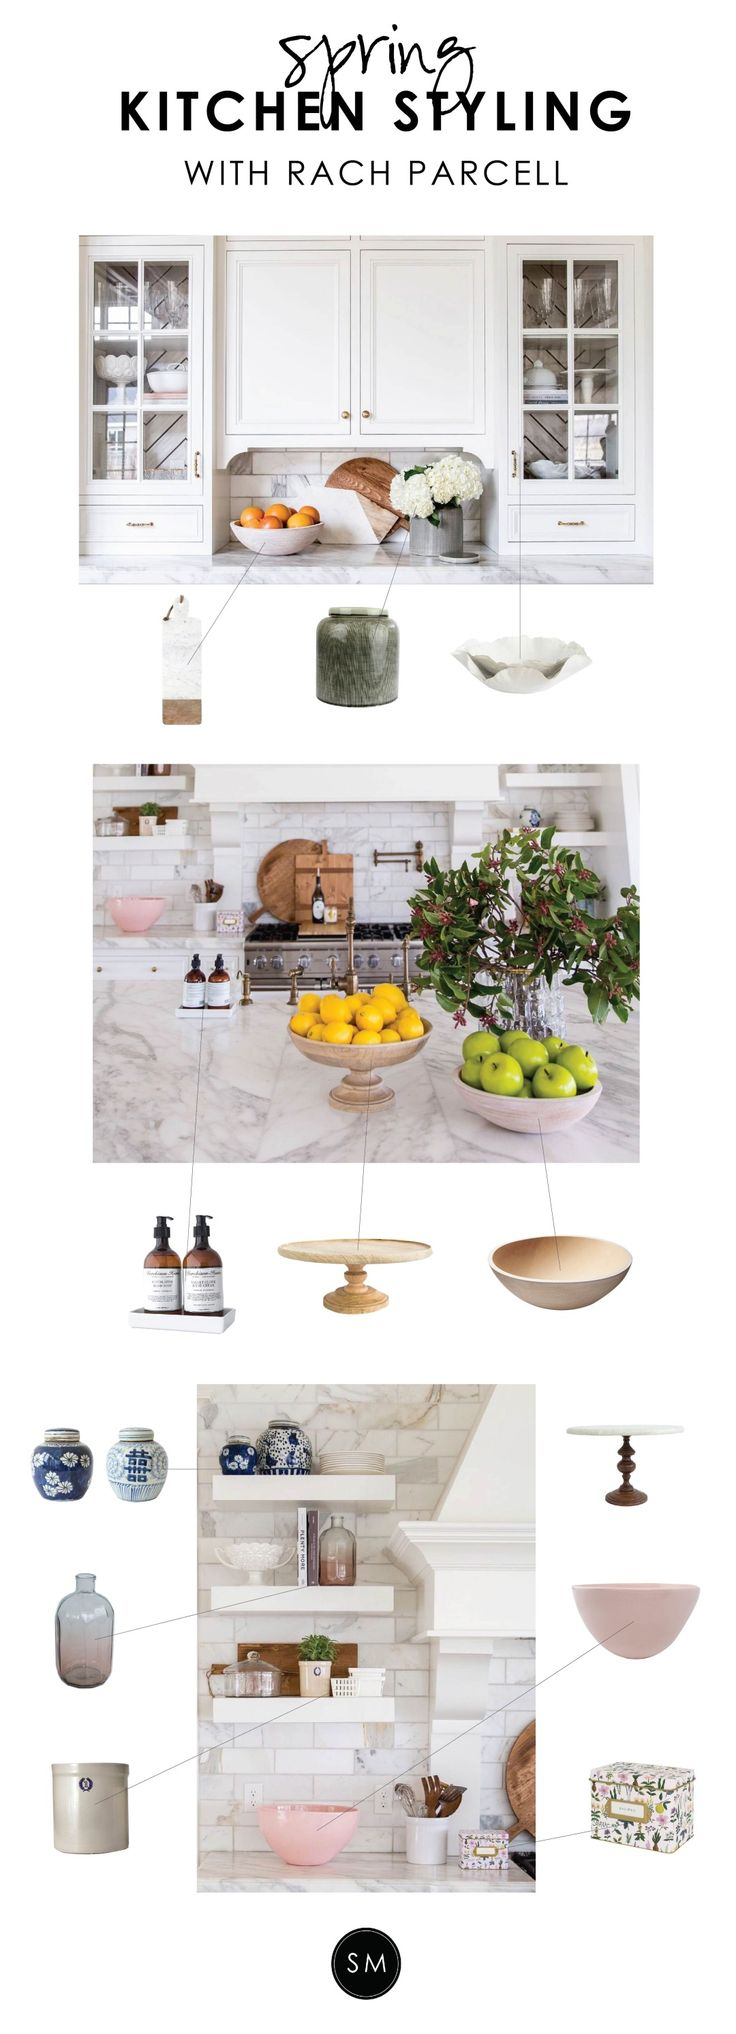 Studio McGee Kitchen Styling with Rach Parcell